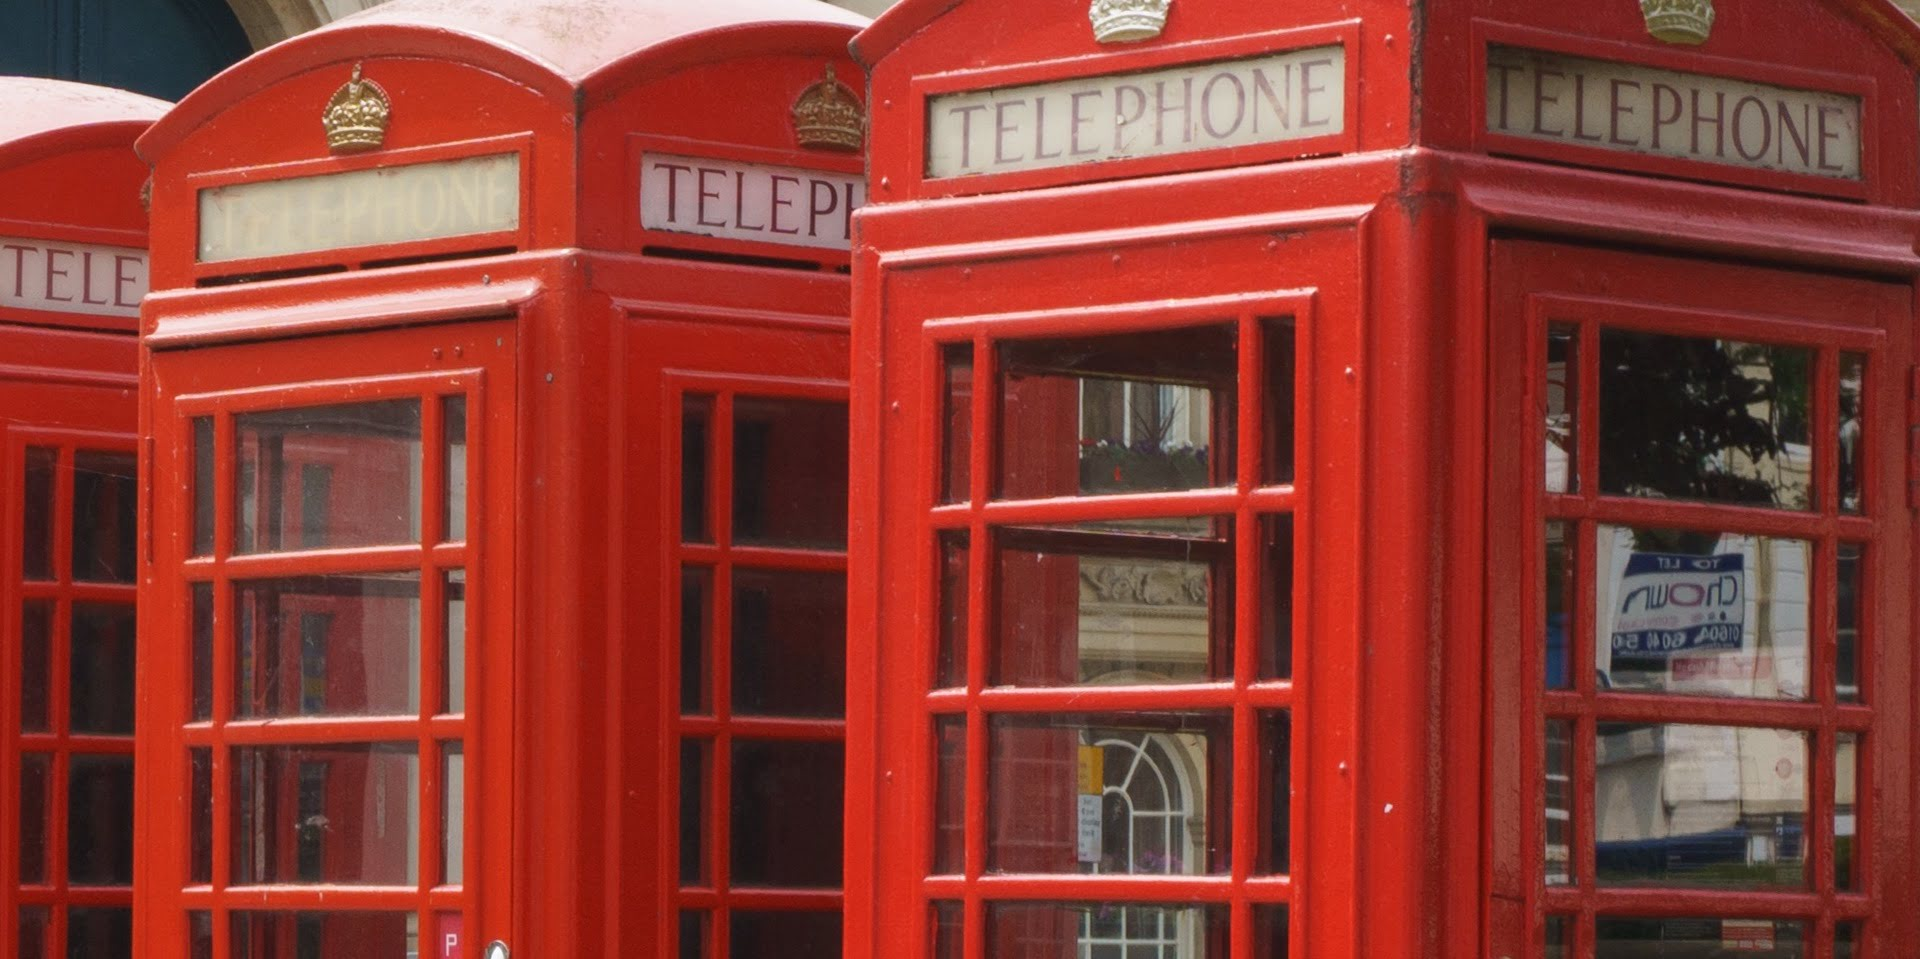 Contact Us - Phone Boxes